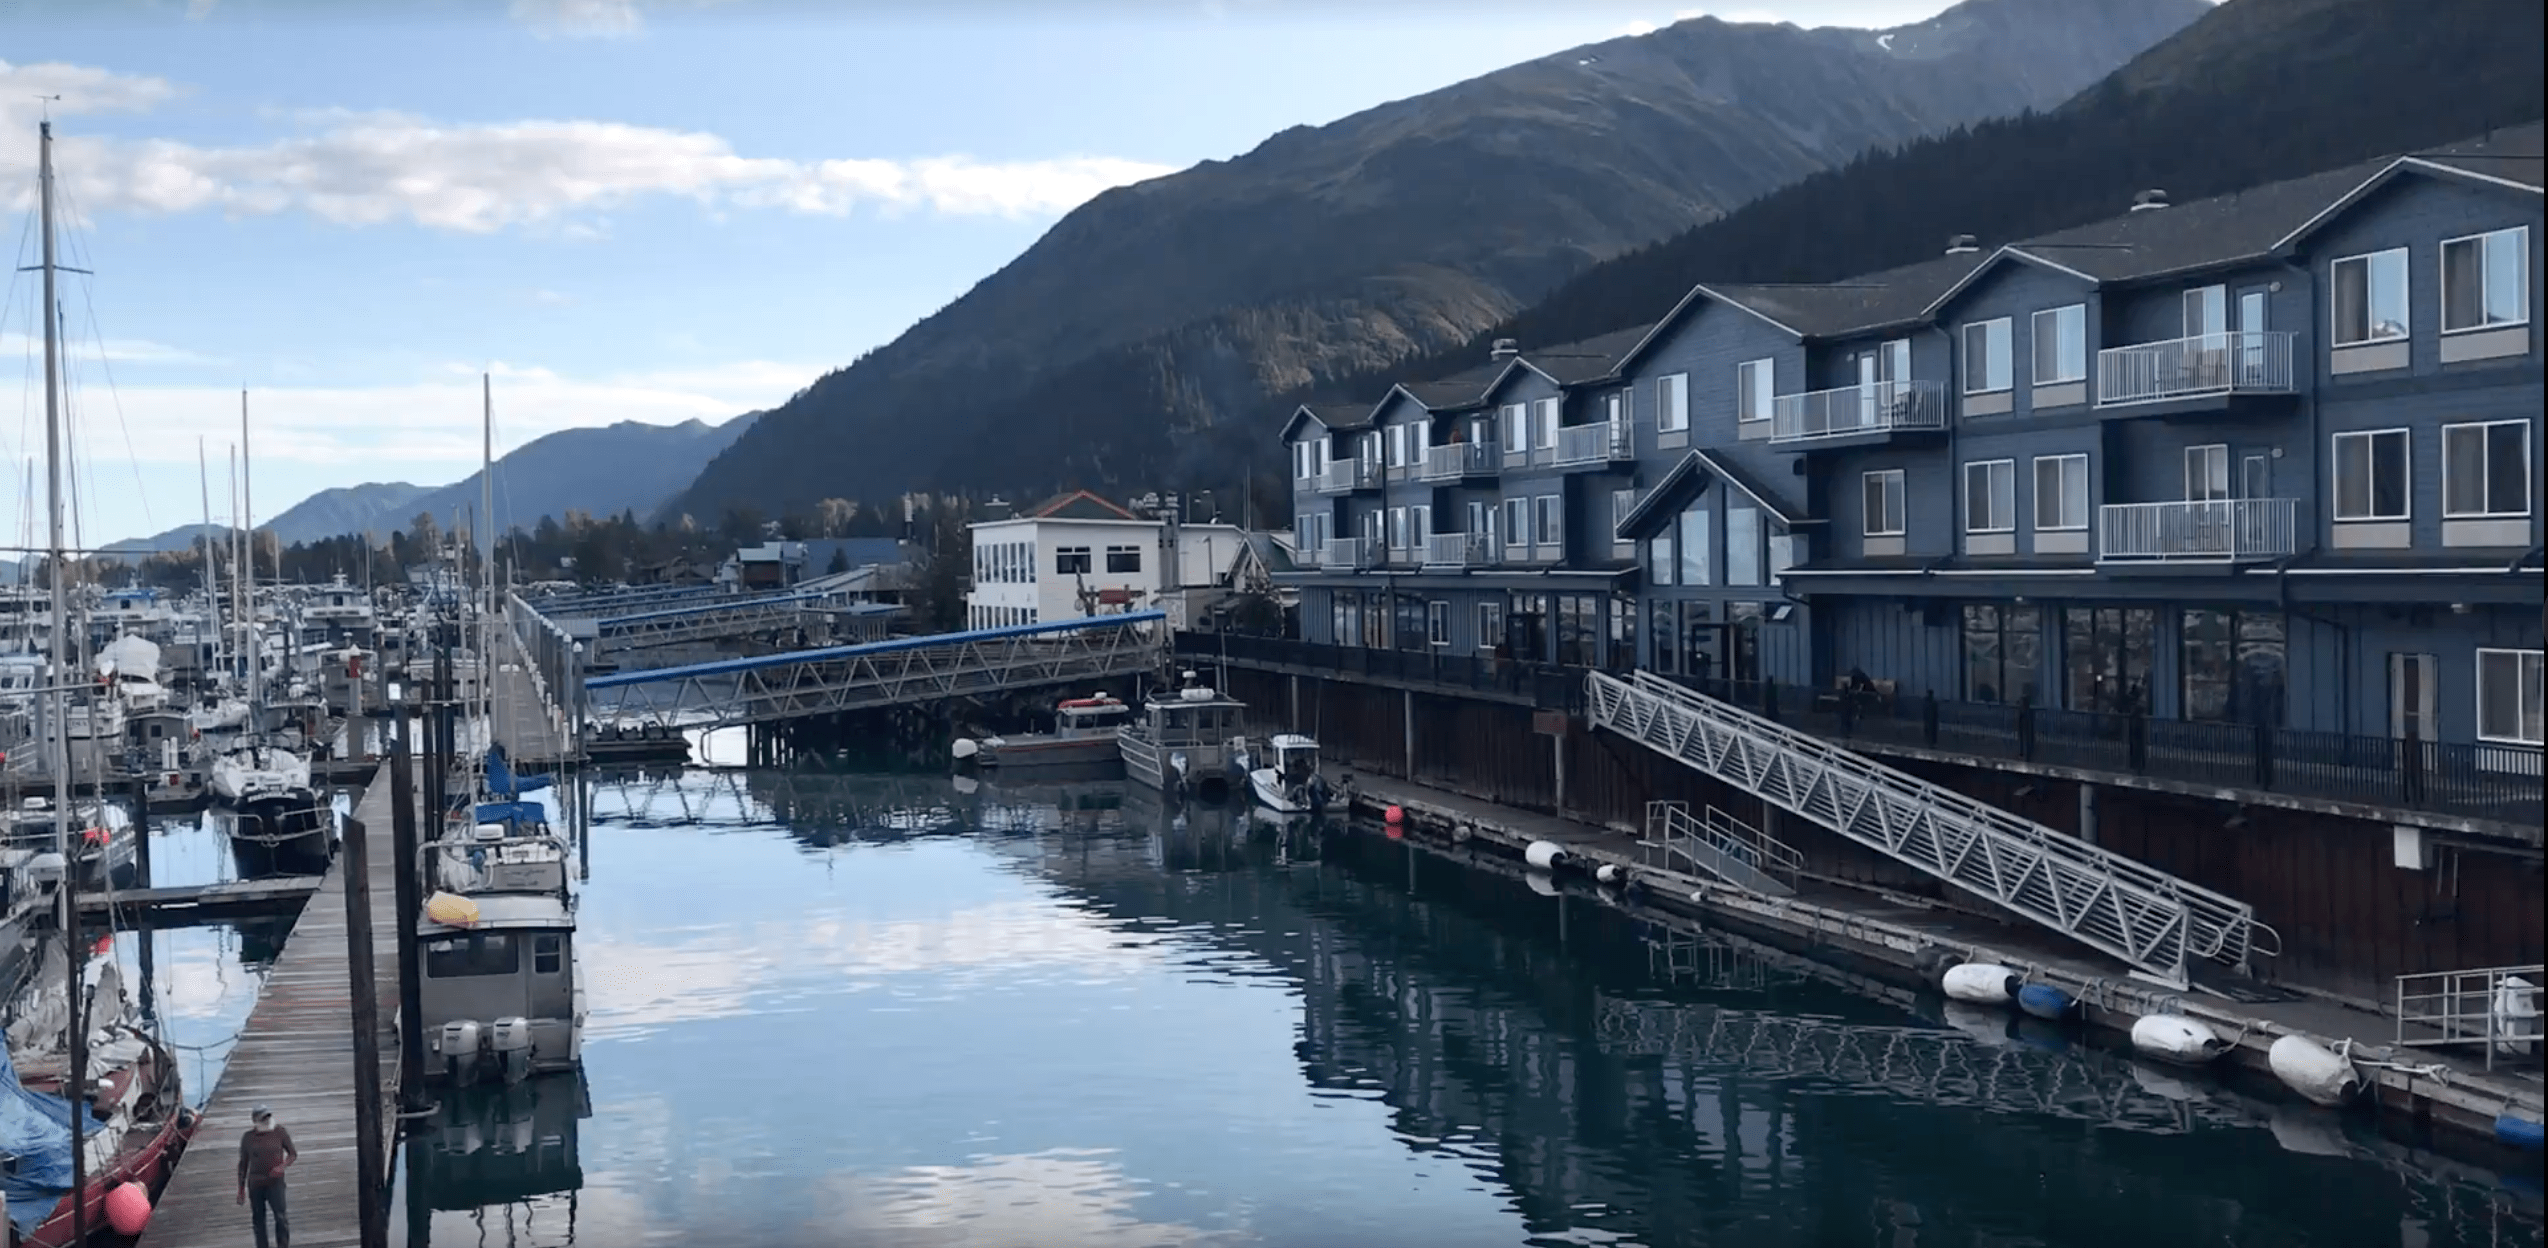 Harbor 360 Hotel in Seward, Alaska is the perfect place to stay right on the water #sewardaalaska #alaska #travelalaska